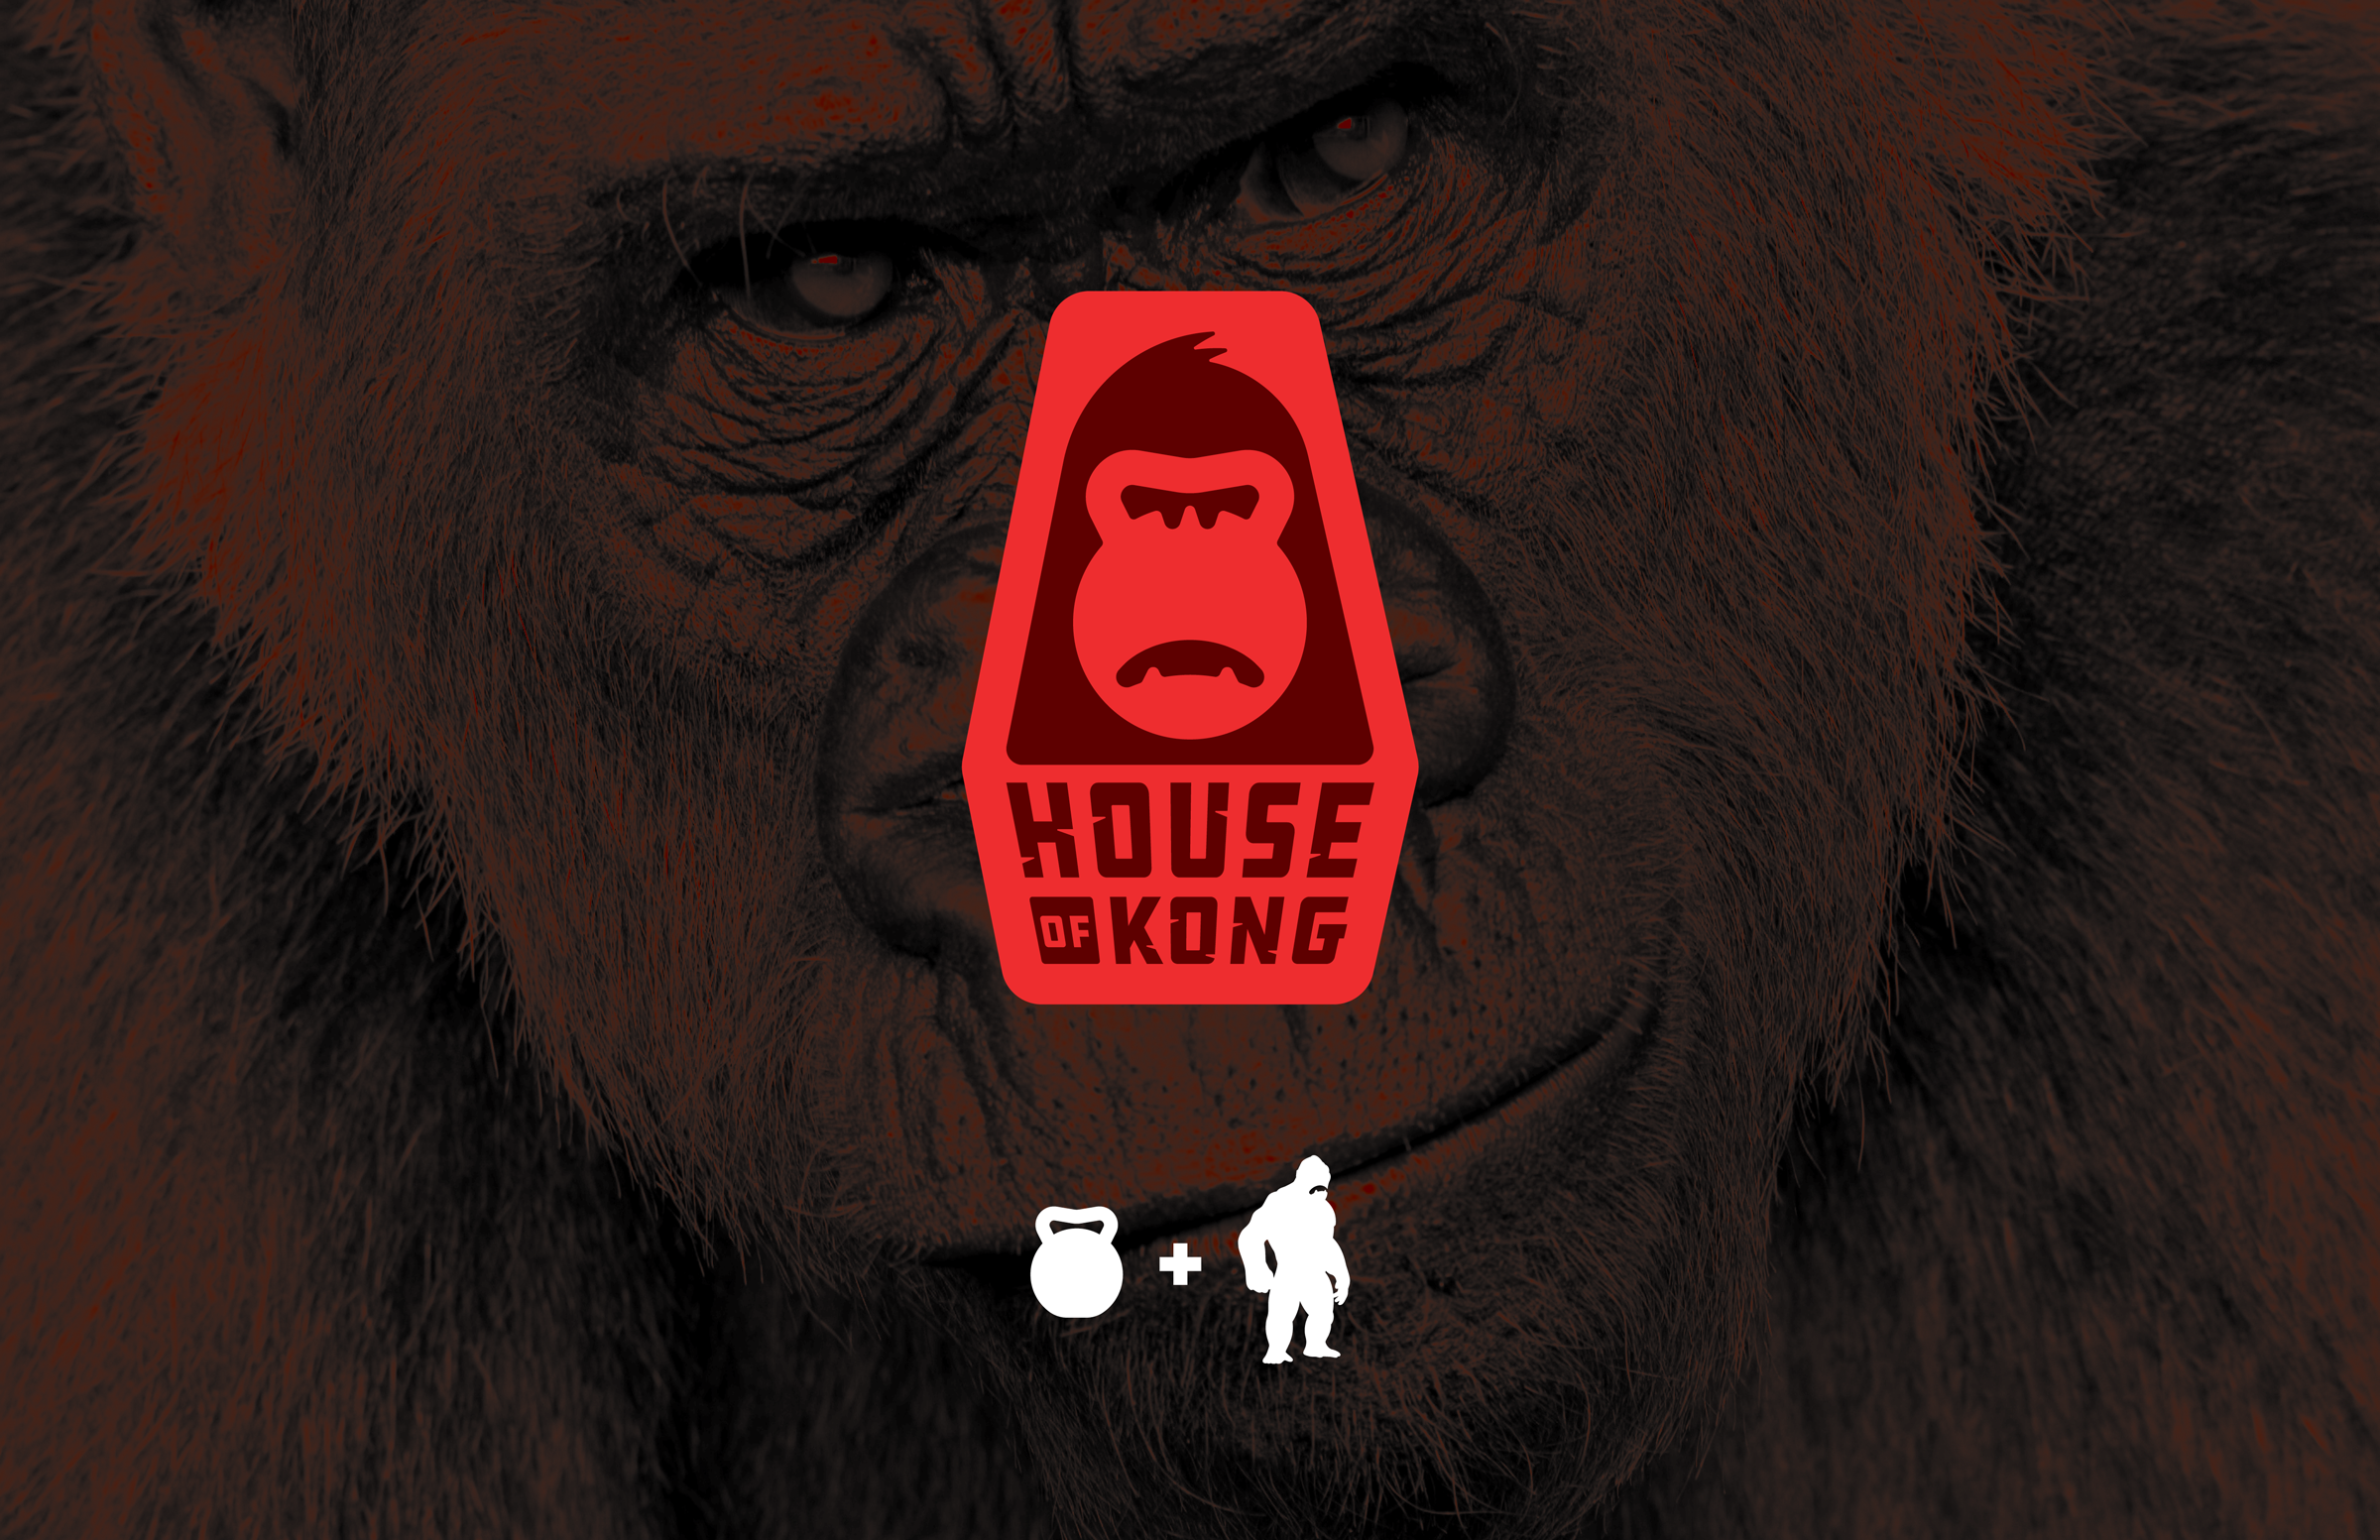 House of Kong logo